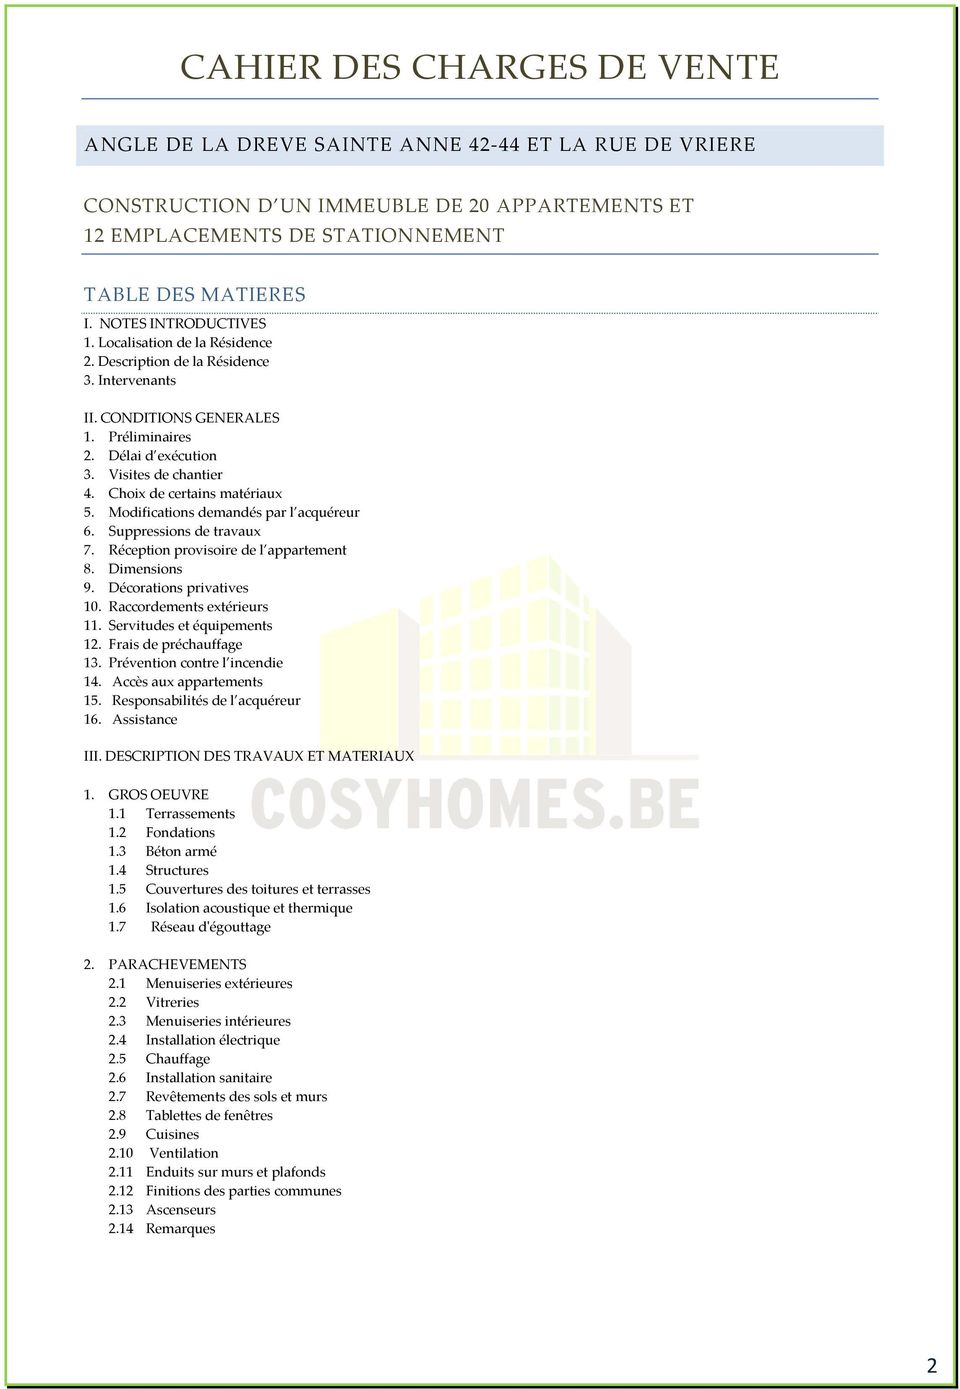 Choix de certains matériaux 5. Modifications demandés par l acquéreur 6. Suppressions de travaux 7. Réception provisoire de l appartement 8. Dimensions 9. Décorations privatives 10.